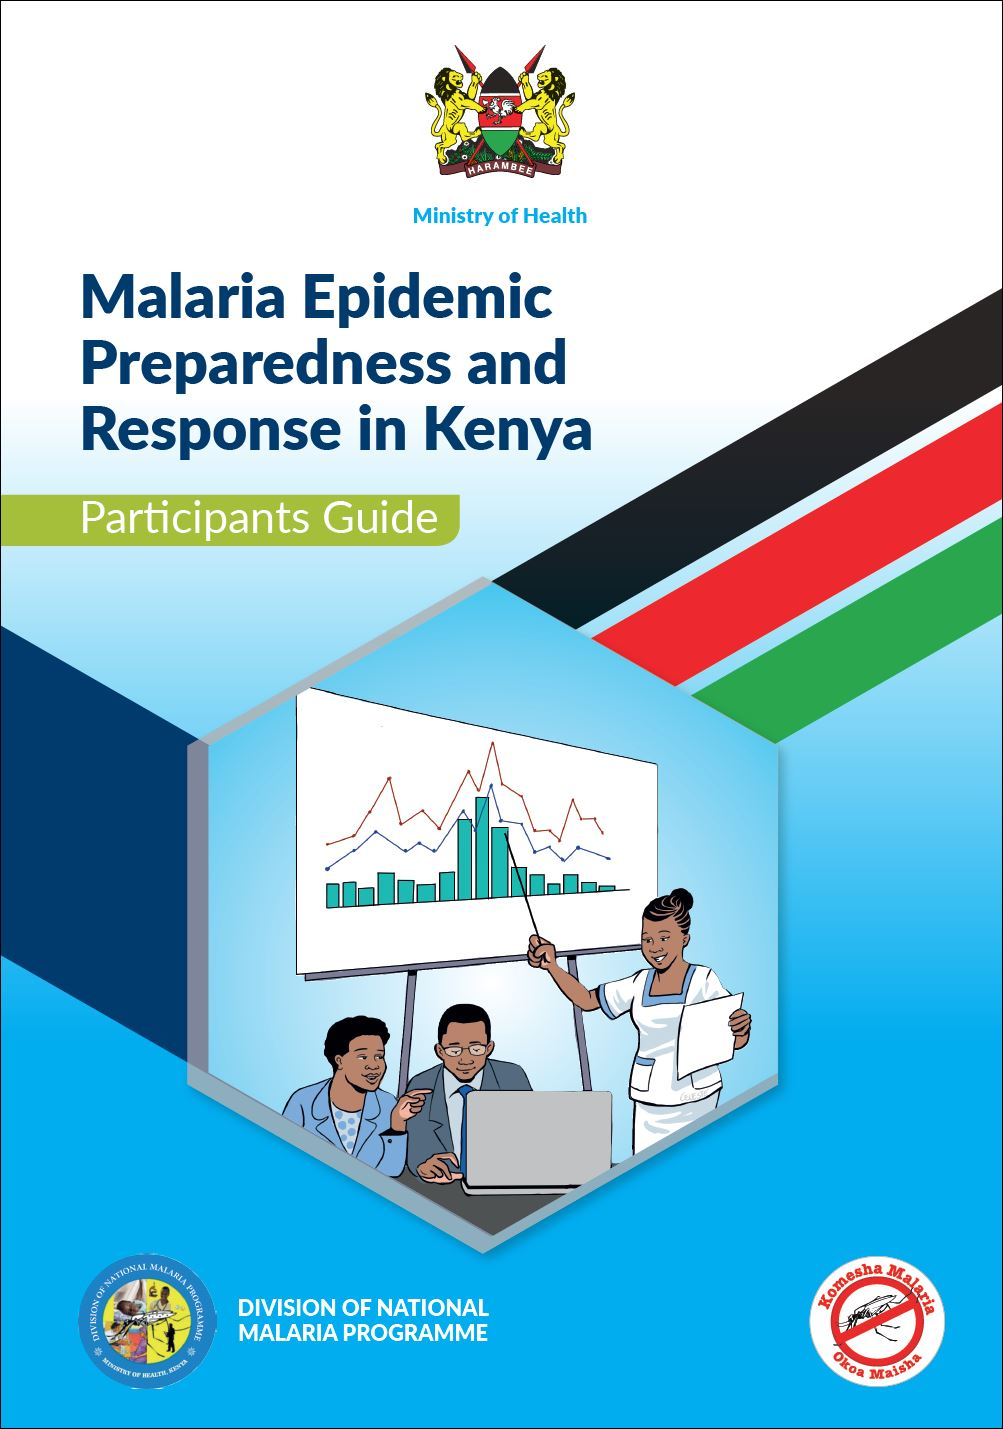 Malaria Epidemic Preparedness and Response in Kenya: Participants Guide